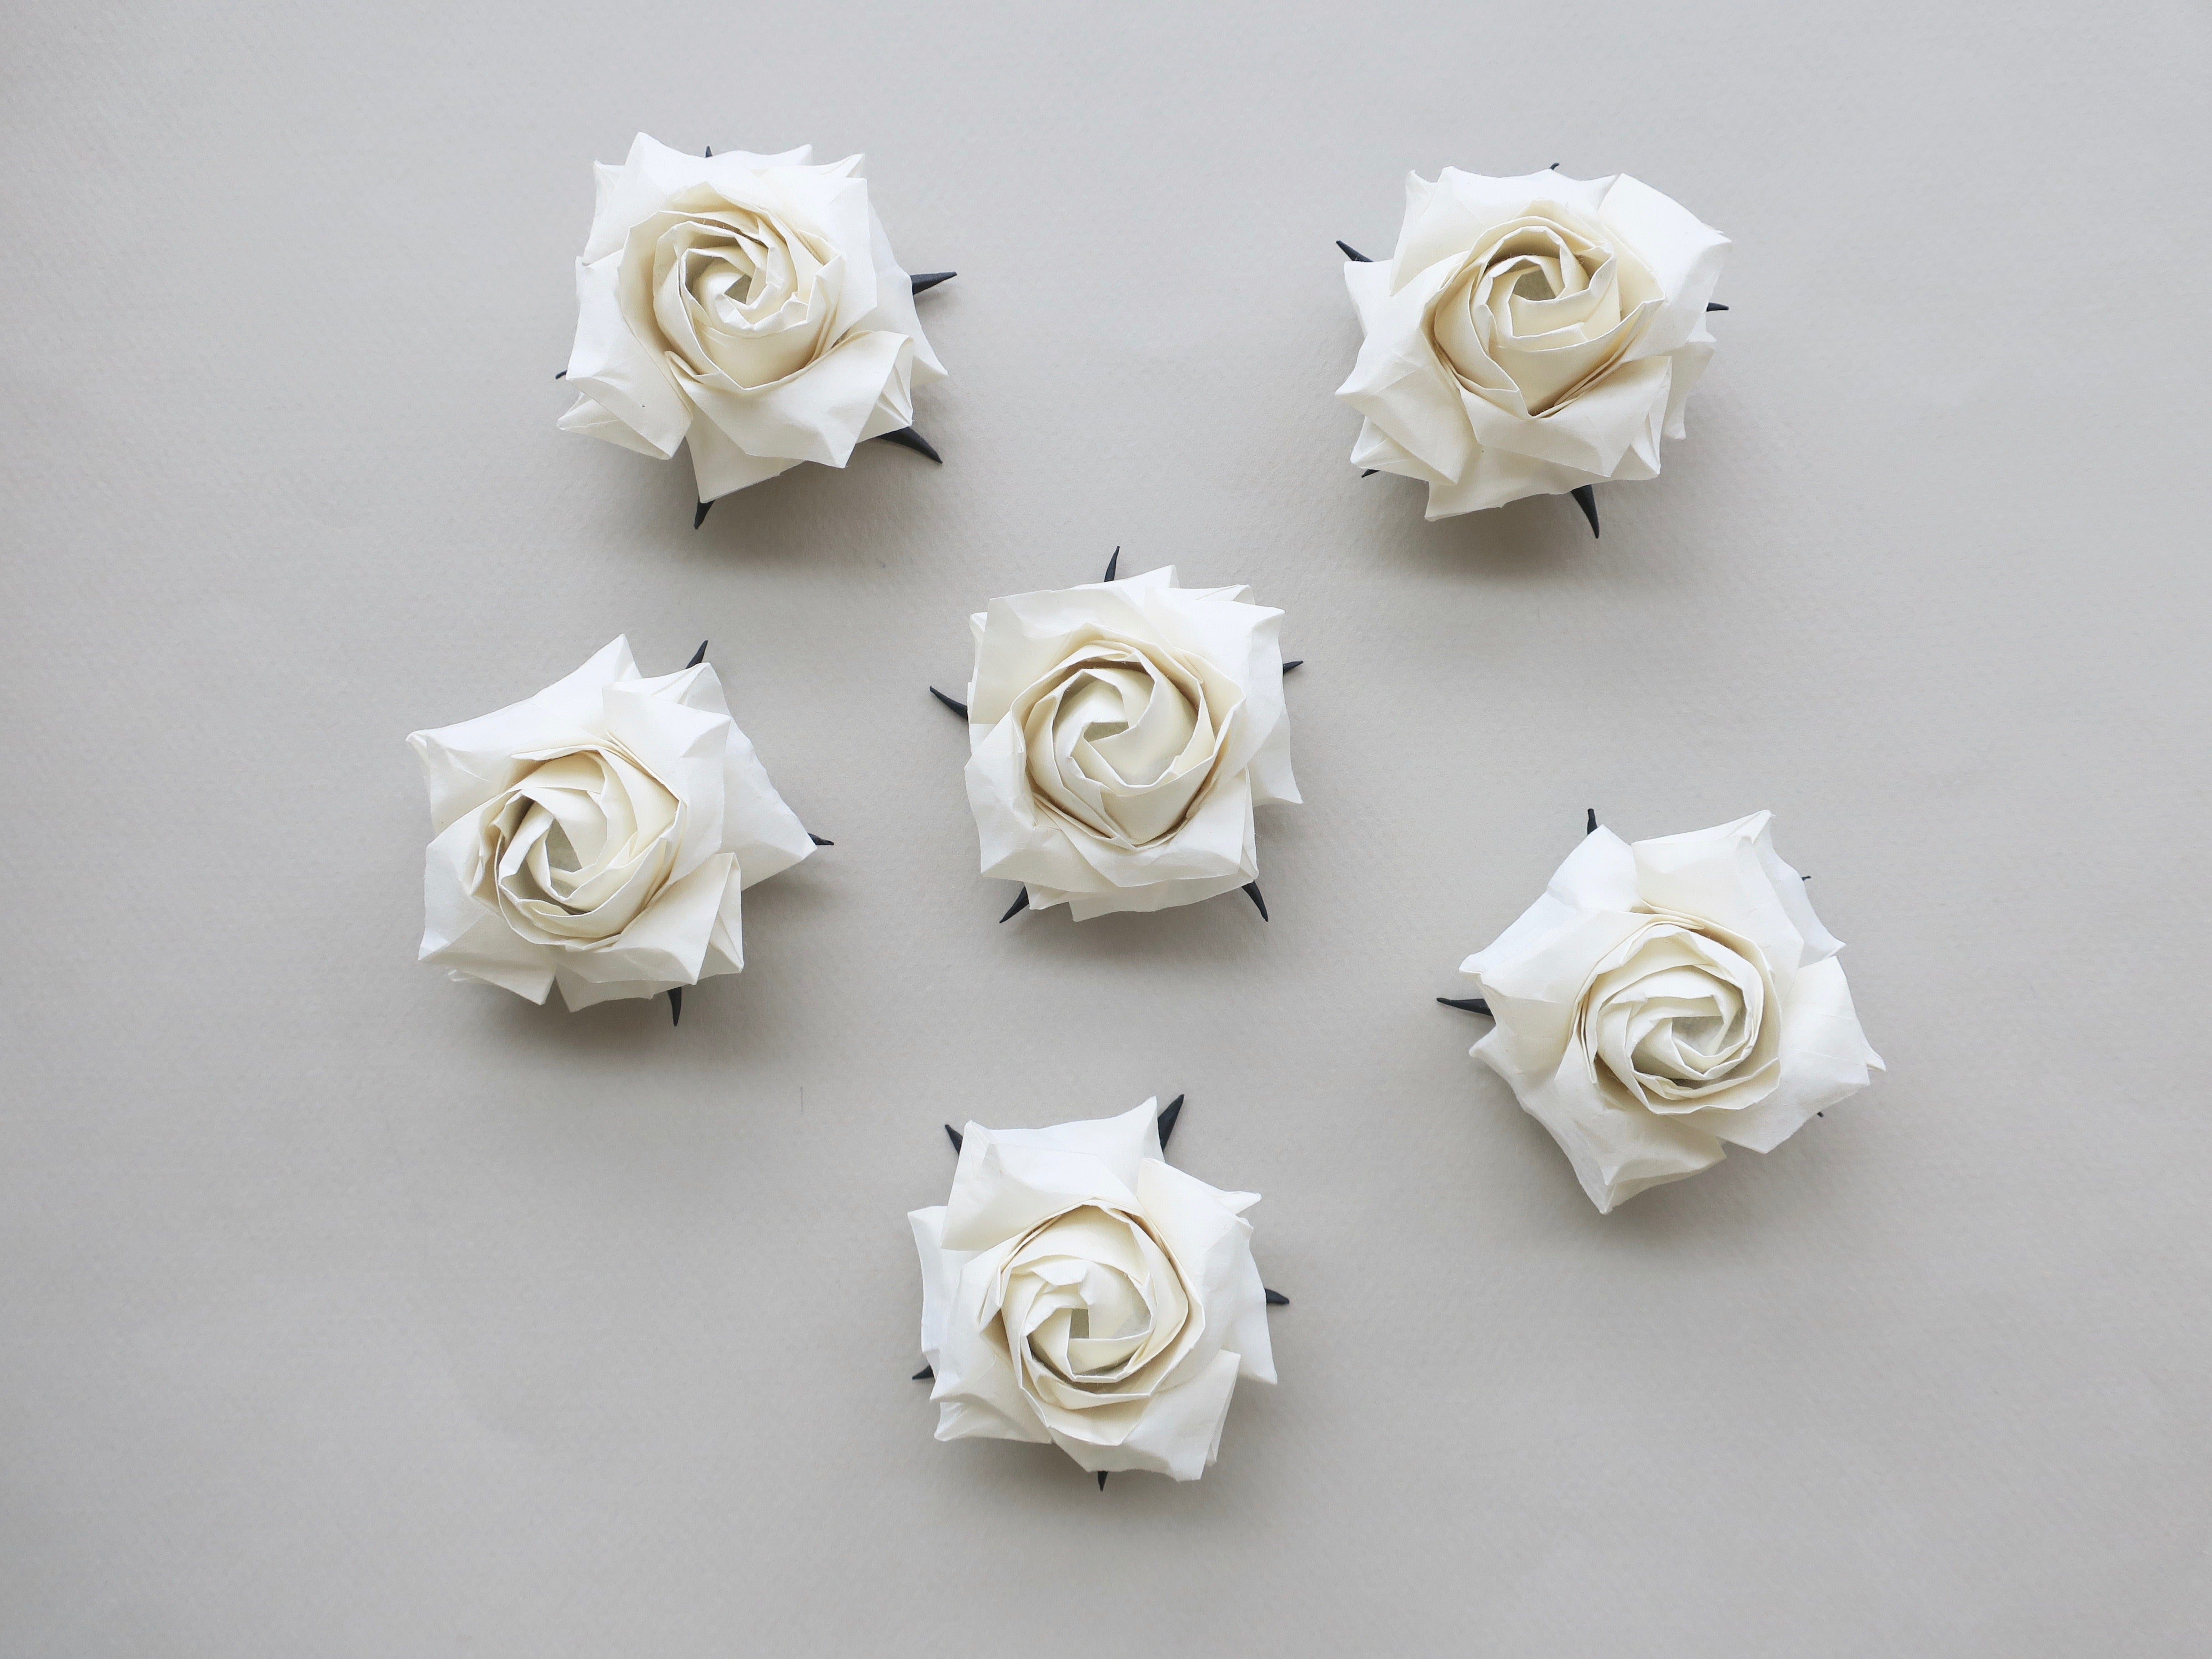 elegant origami white rose flower, wedding and anniversary, party event, window display